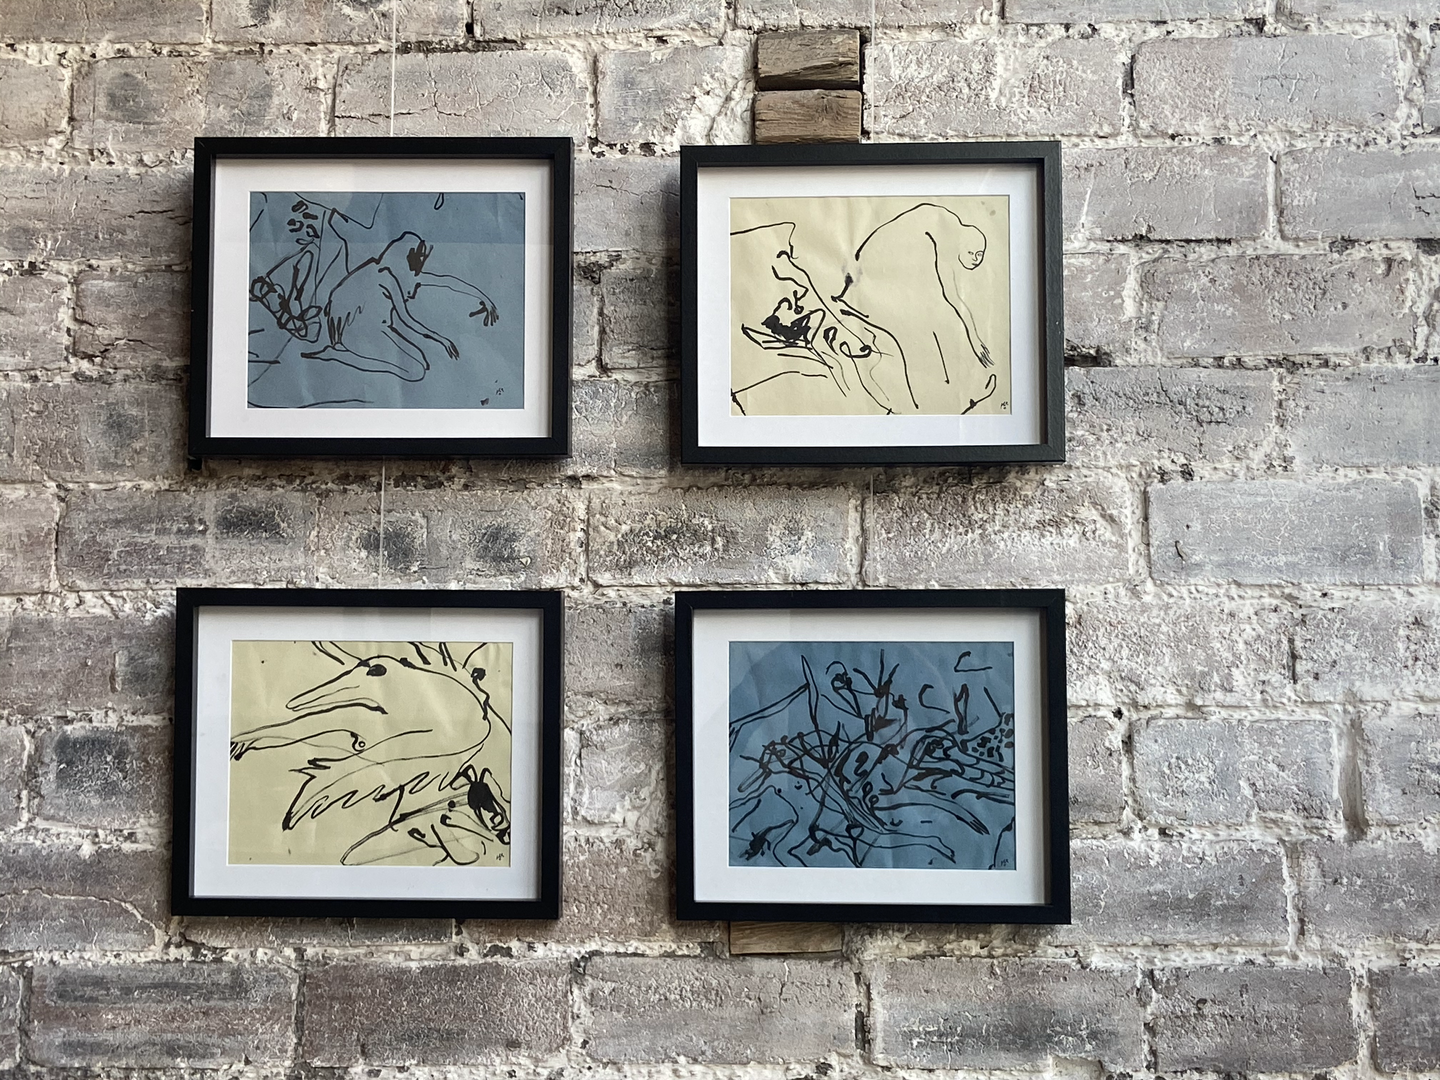 Untitled 1-4 by Helen Lee Robinson.heic